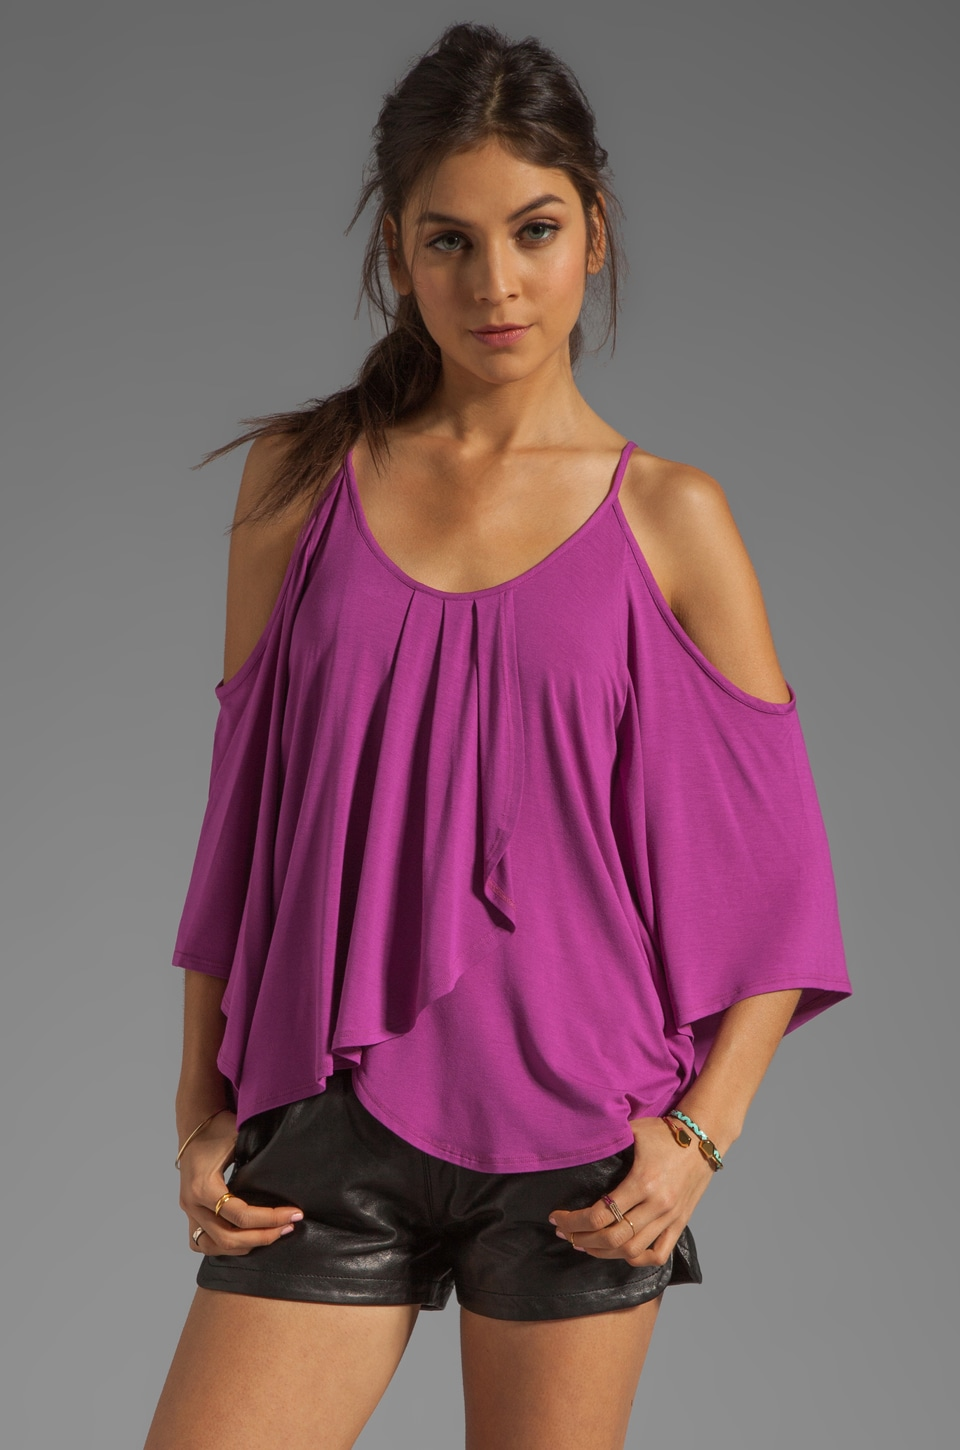 James & Joy Tanya Open Shoulder Batwing Top in Magenta